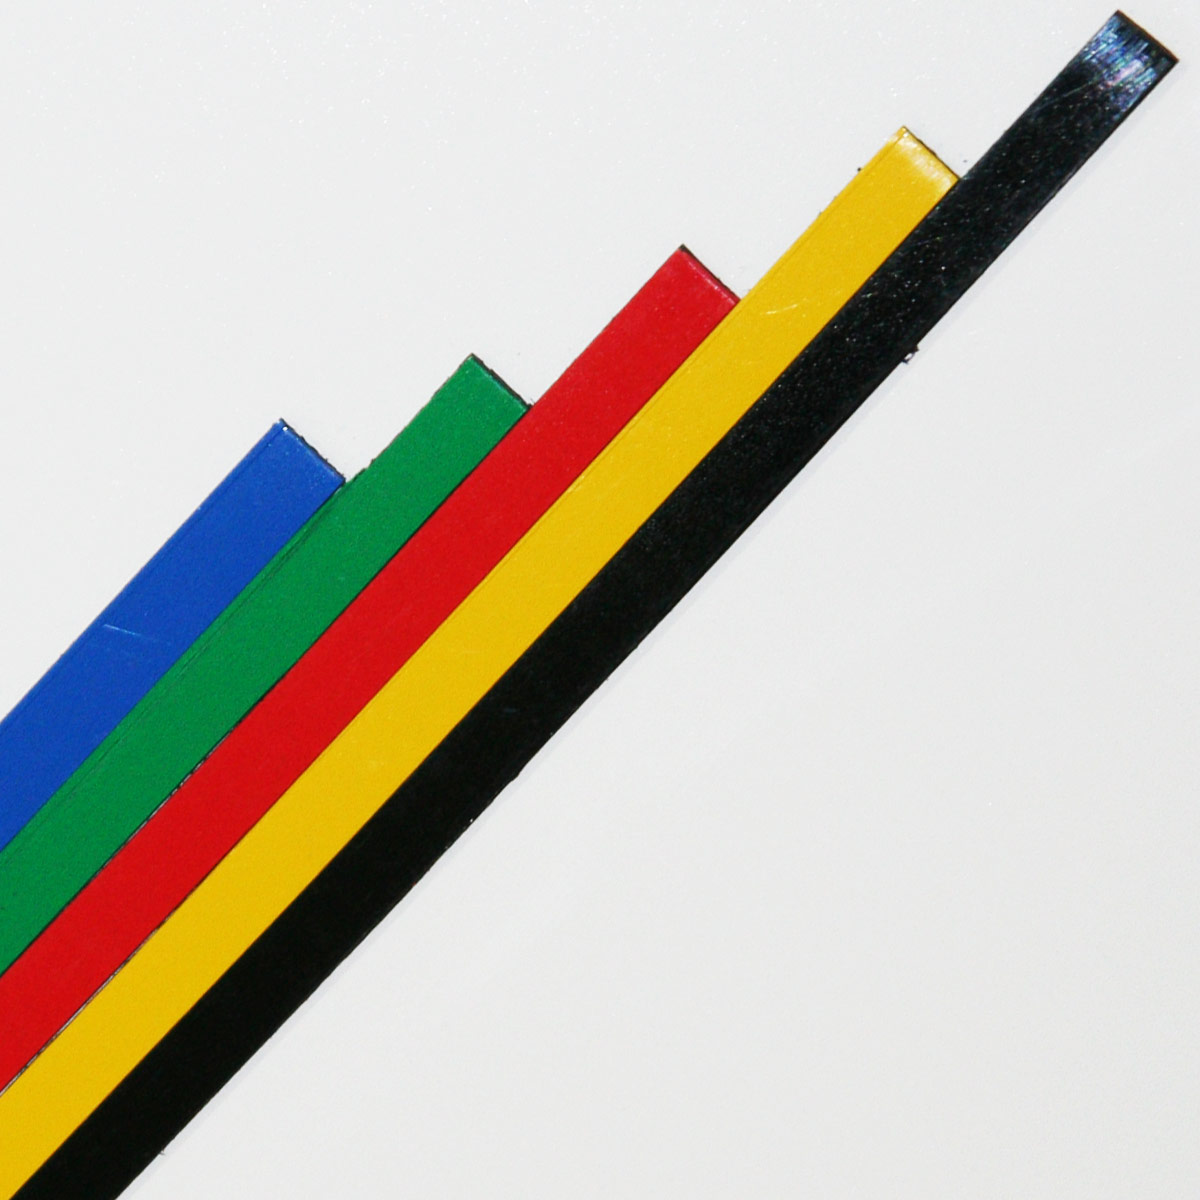 Self adhesive divider tape for planning boards